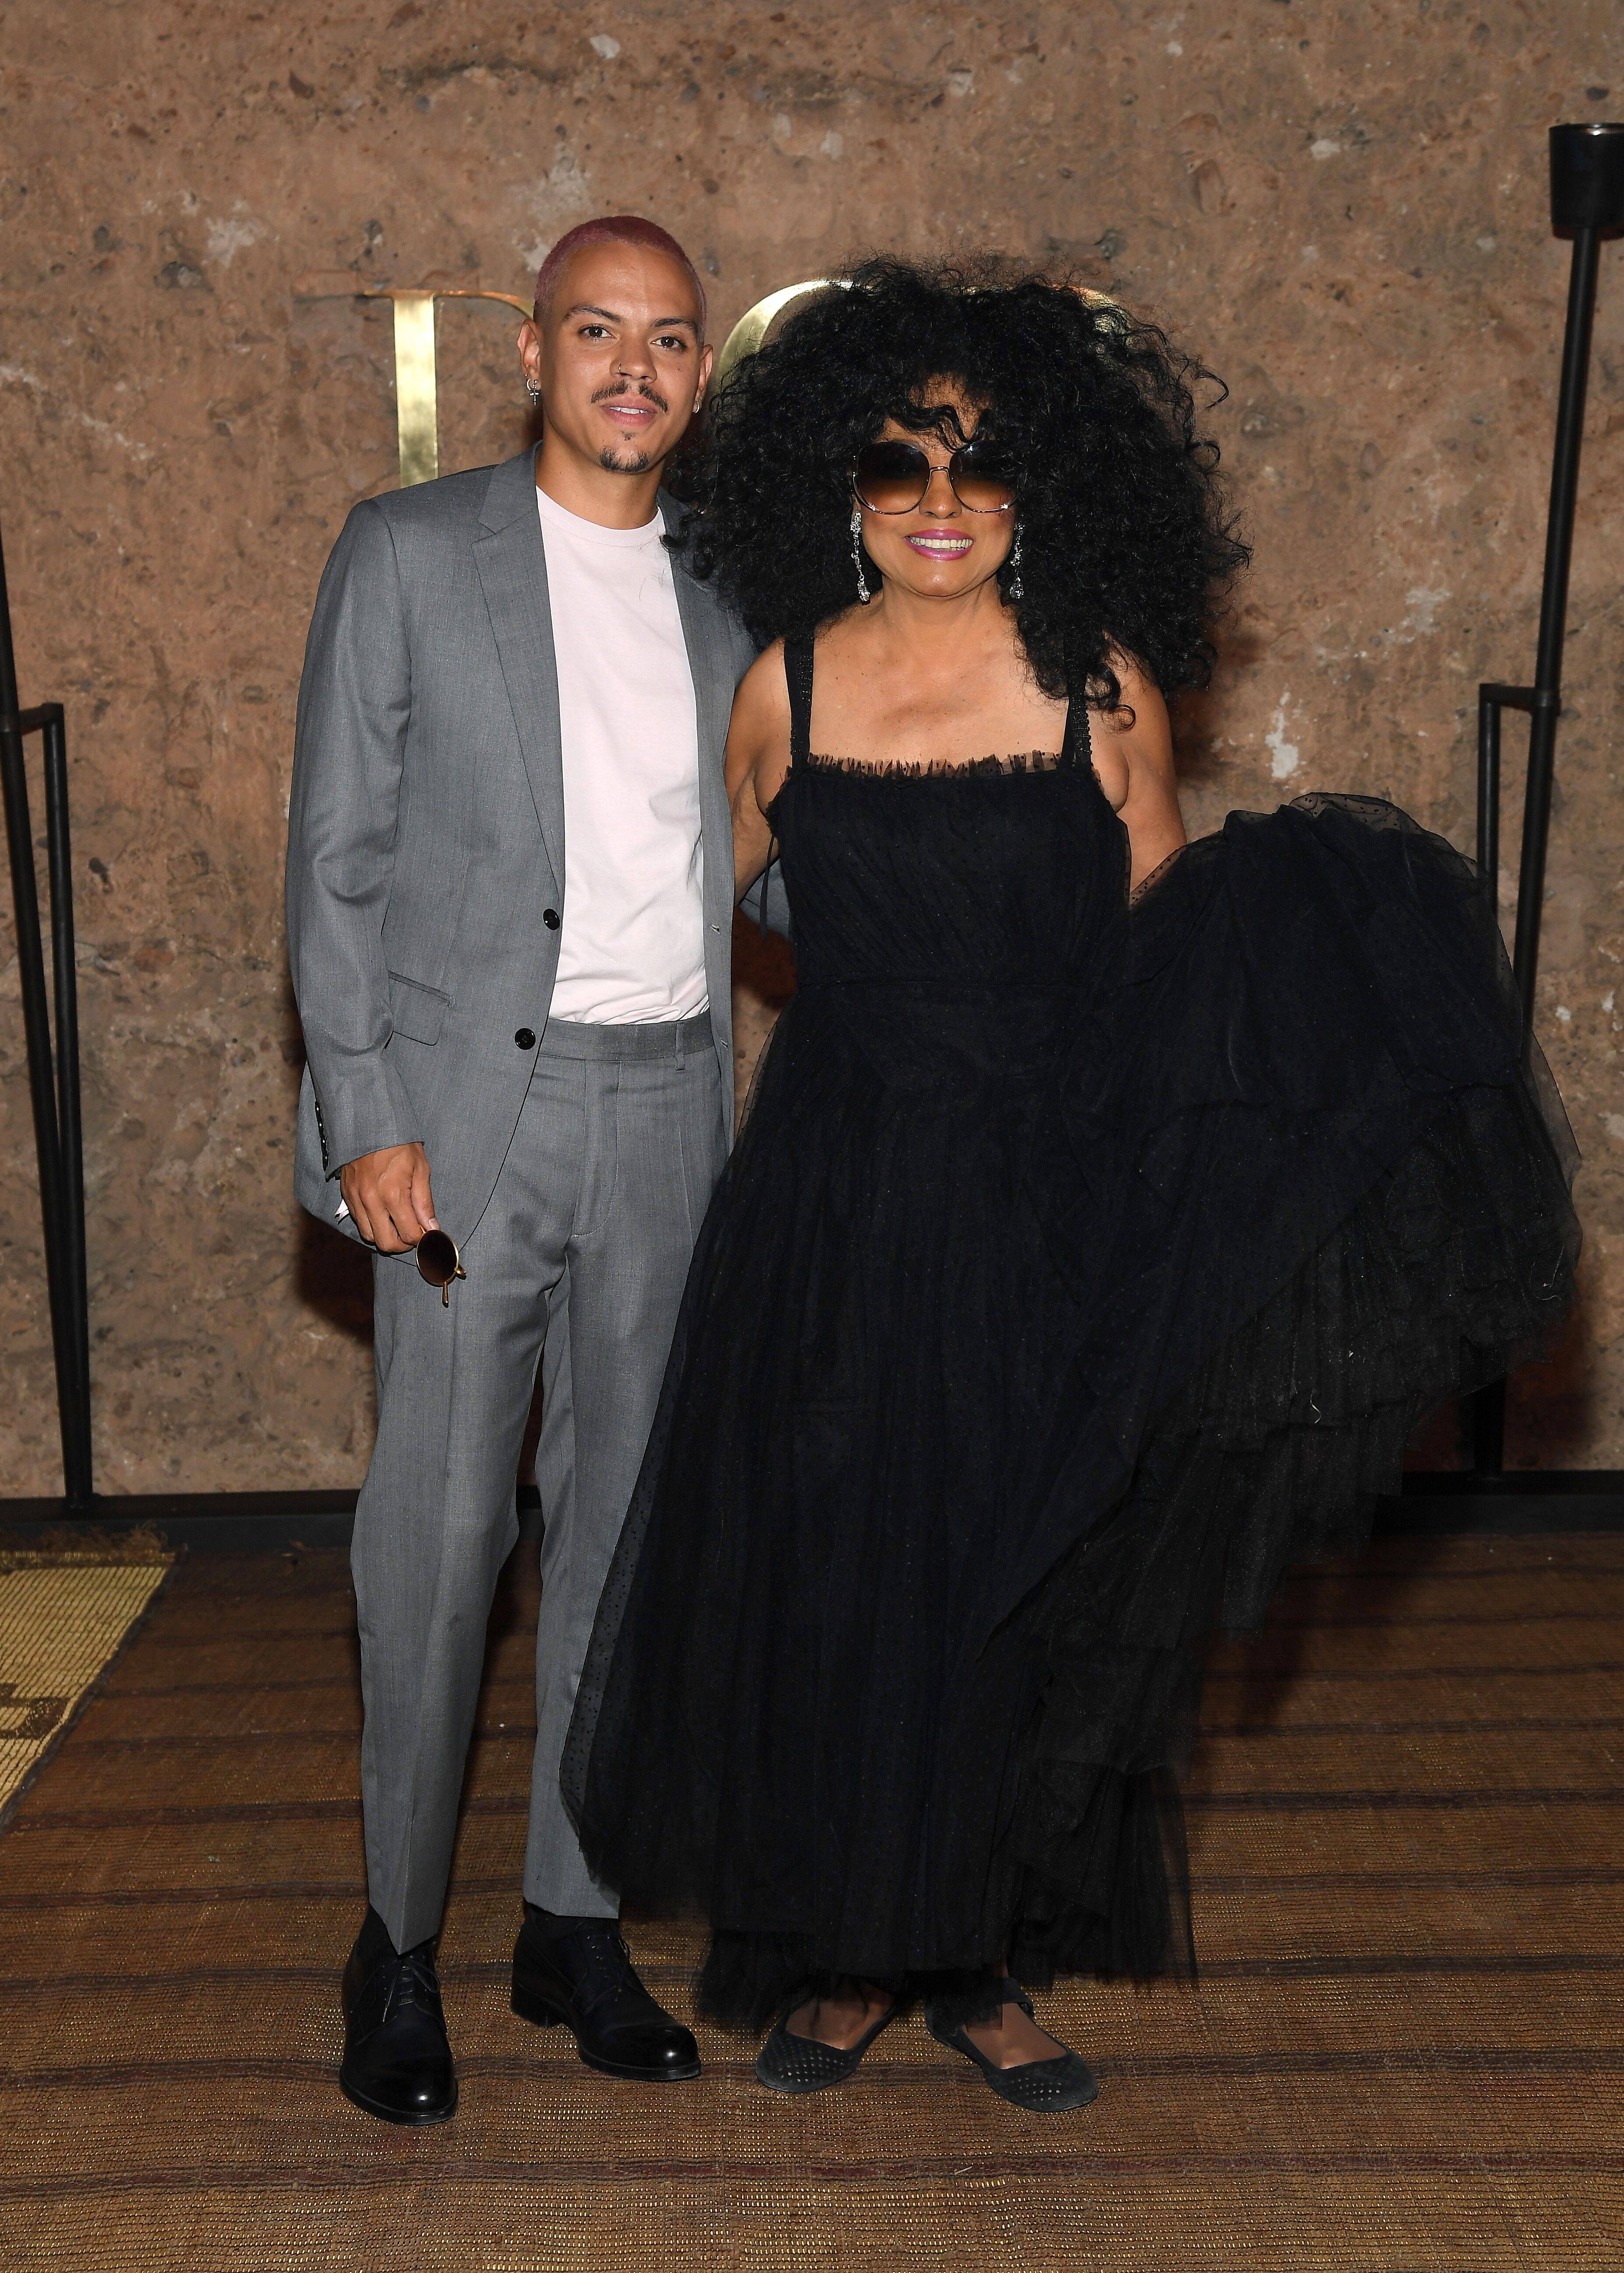 Evan Ross and Diana Ross at the Christian Dior Couture S/S20 Cruise Collection on April 29, 2019 in Marrakech, Morocco. | Photo: Getty Images